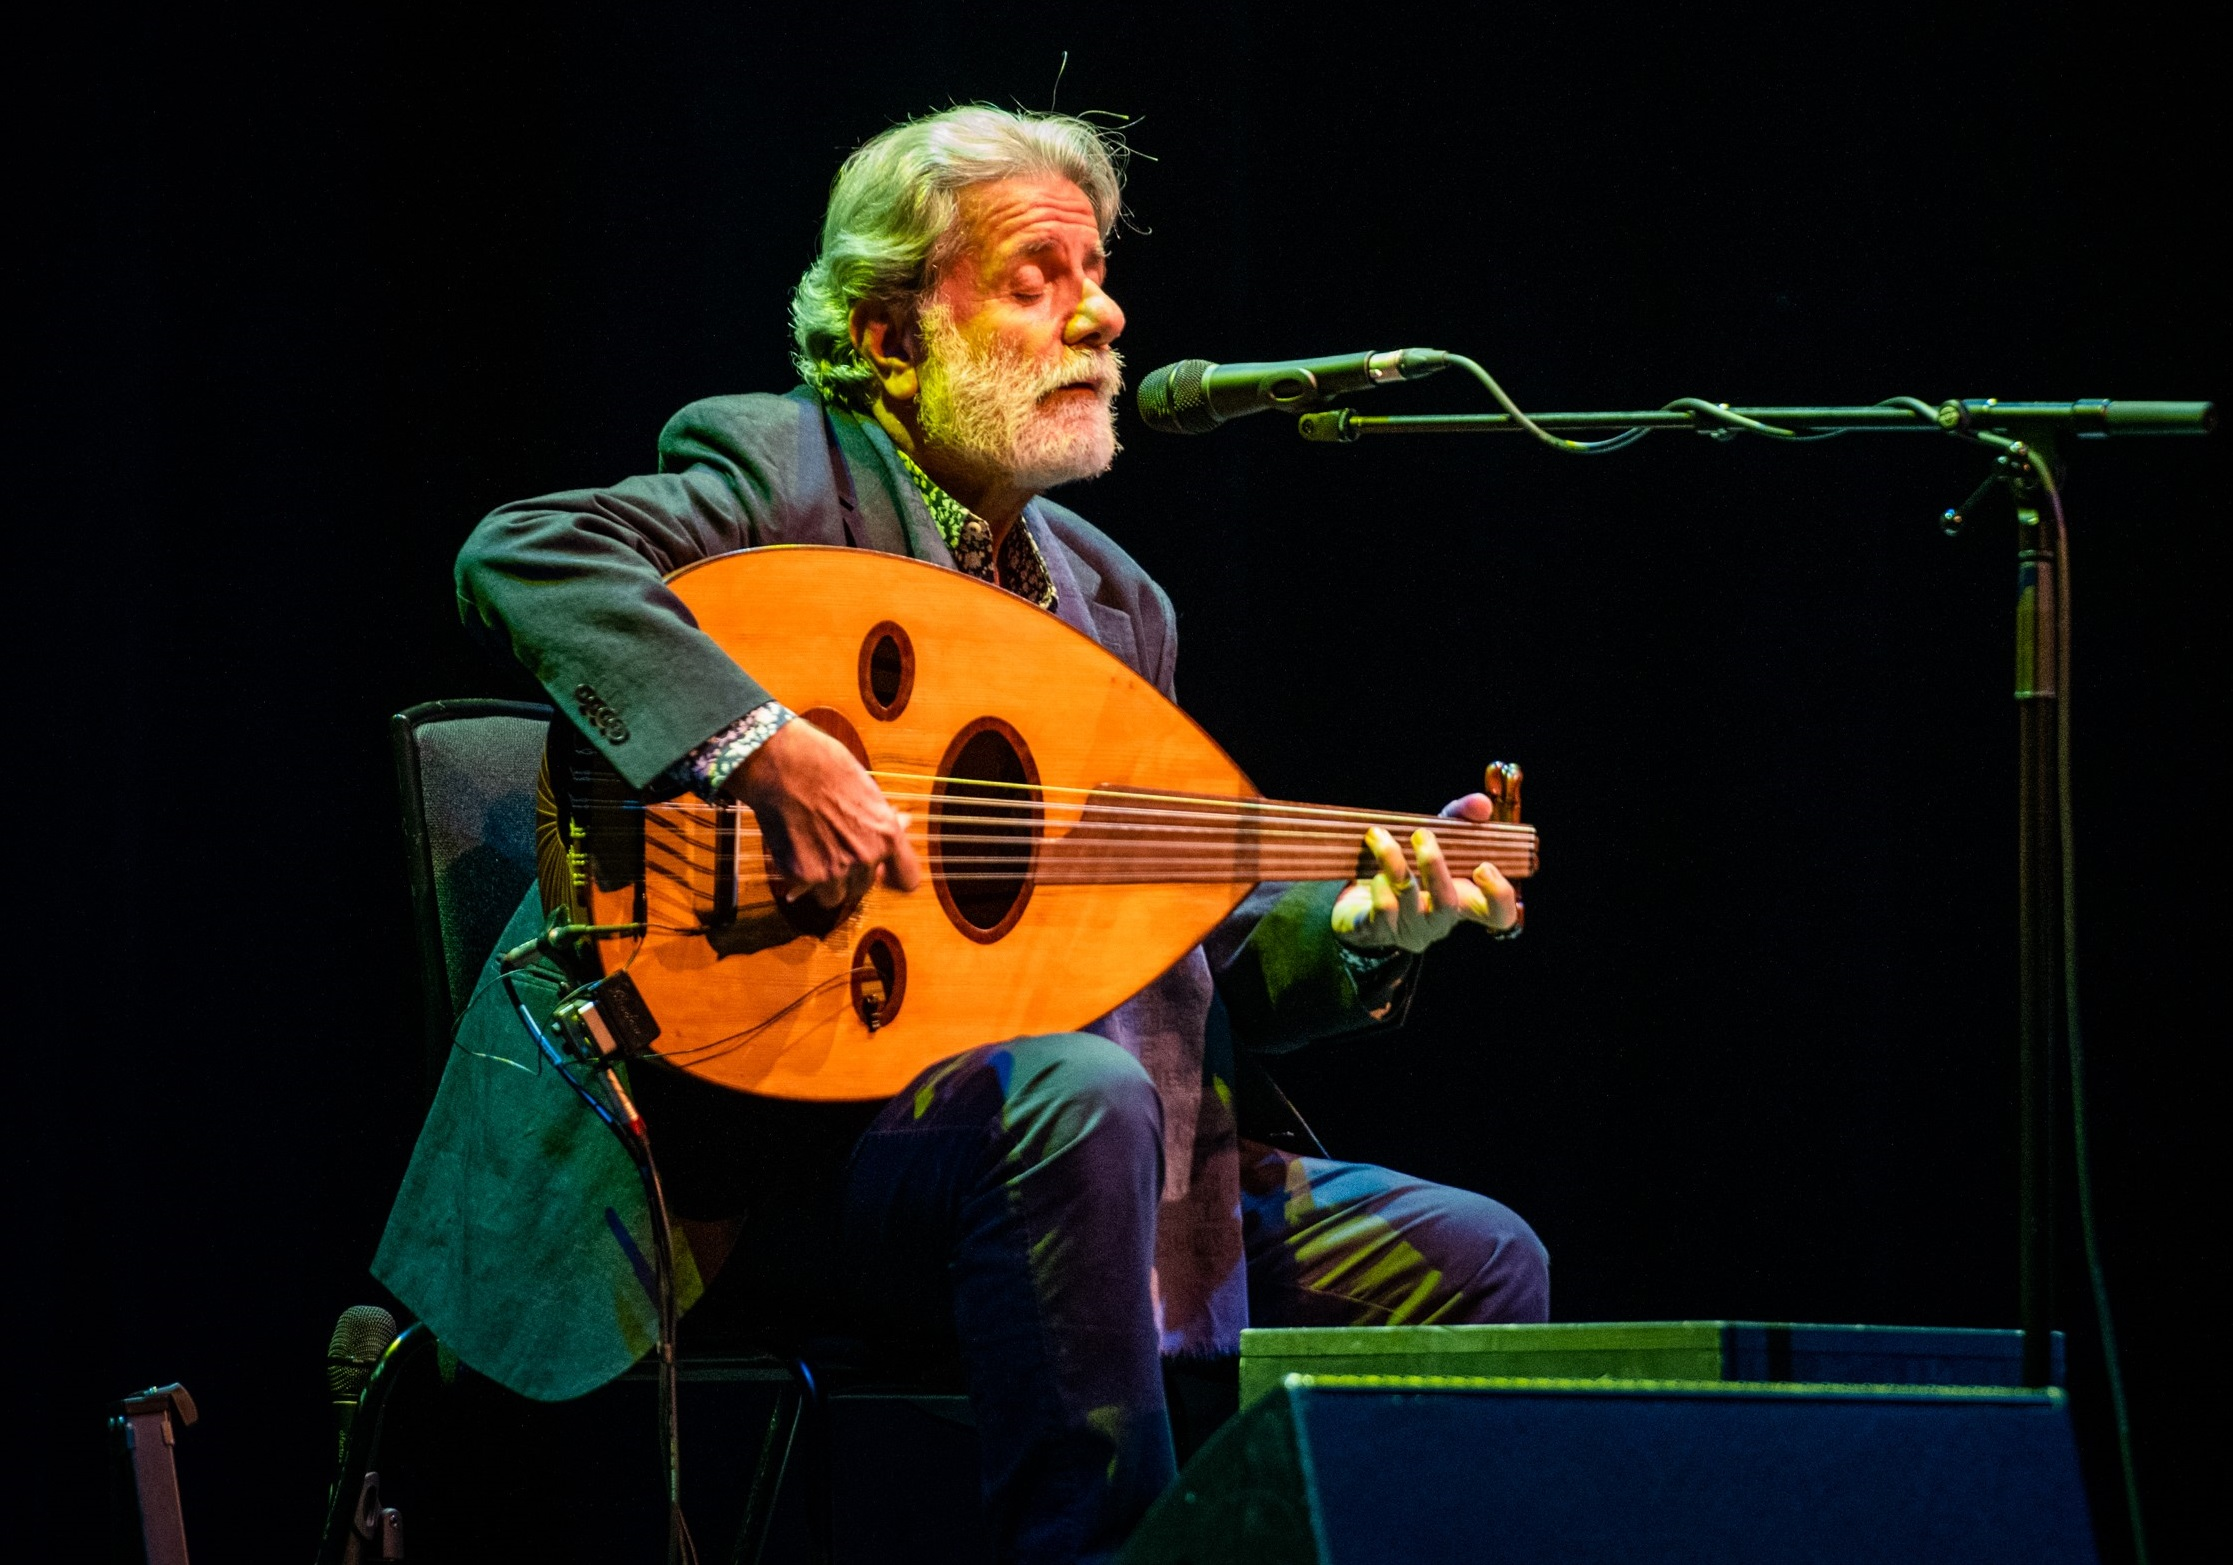 Marcel Khalife performs at the Usher Hall as part of the Edinburgh International Festival's You Are Here series (Credit: Gaelle Beri)